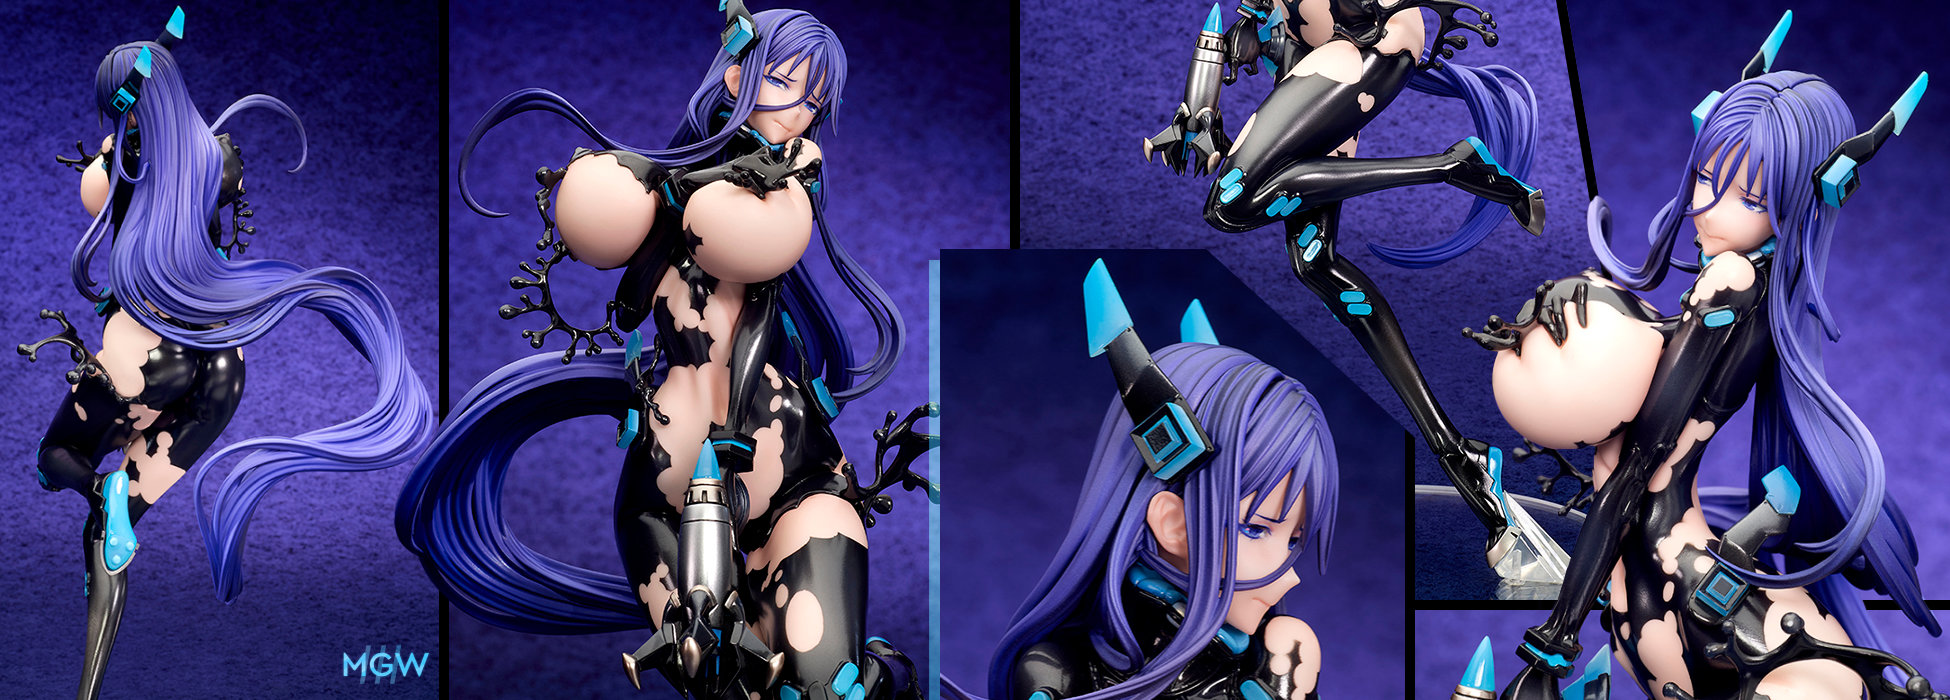 Mahou Shoujo Misa nee Space Suit Ver. by quesQ